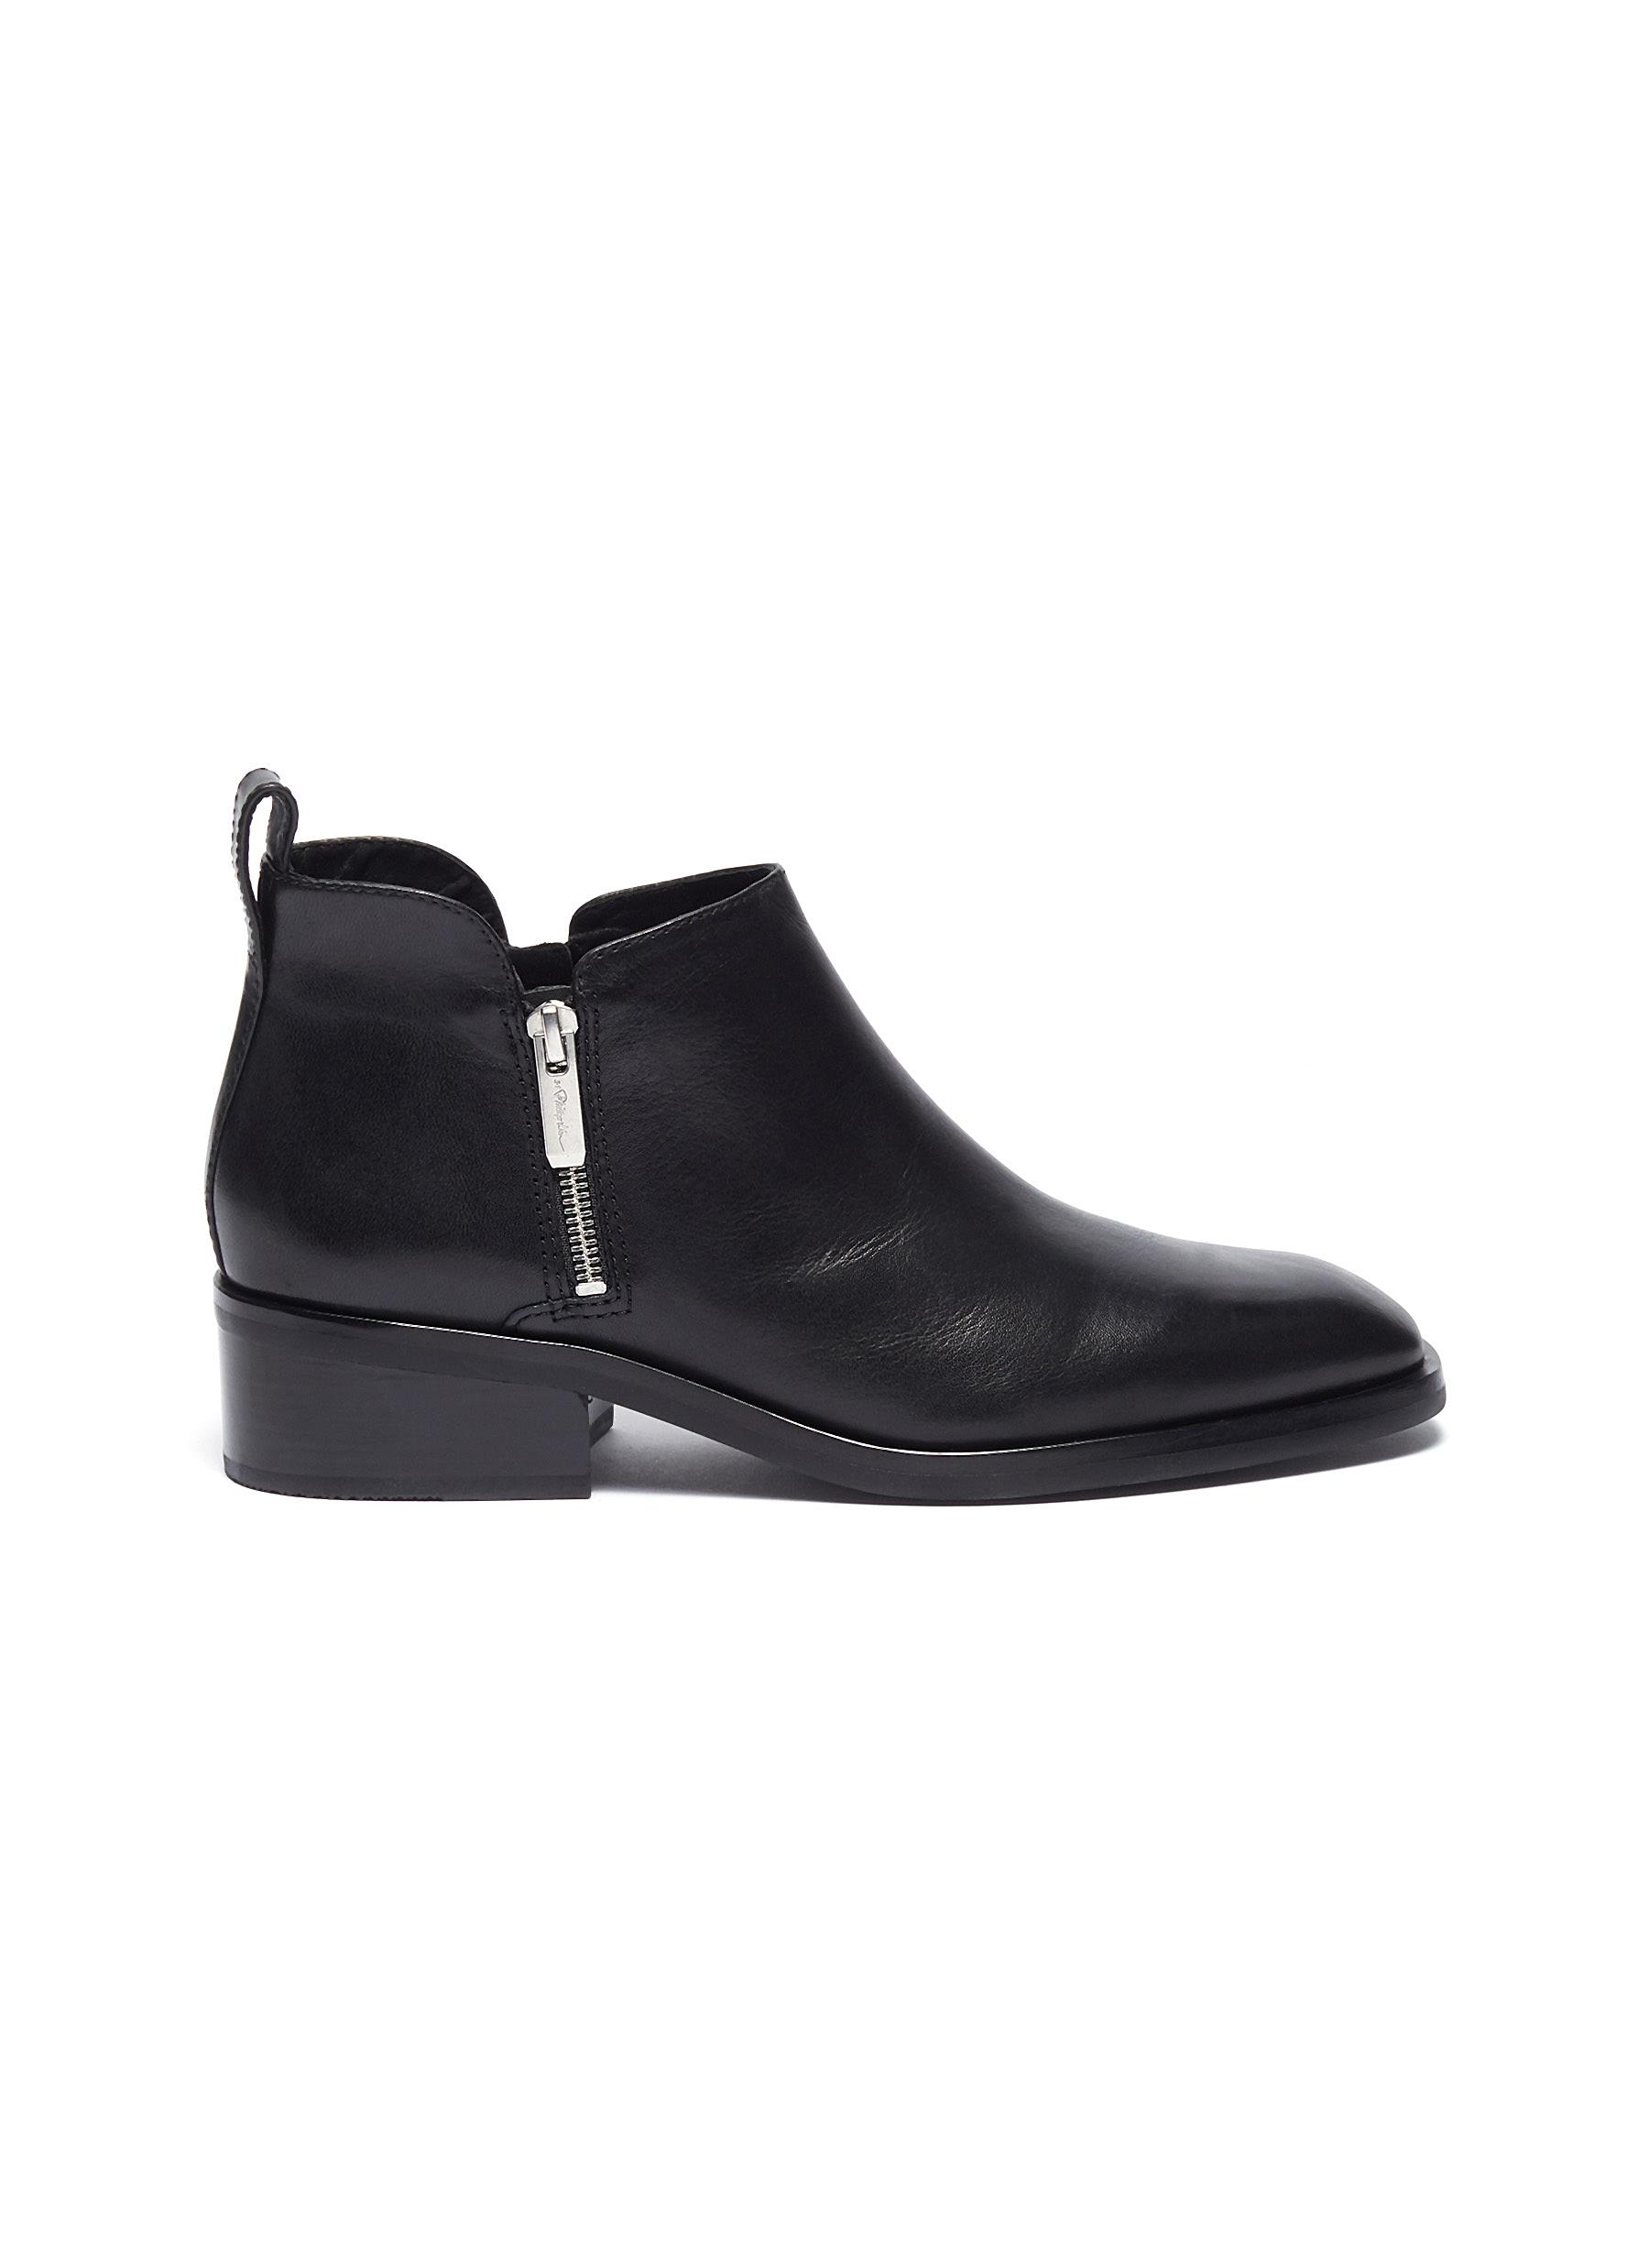 Alexa 40 water resistant leather ankle boots by 3.1 Phillip Lim